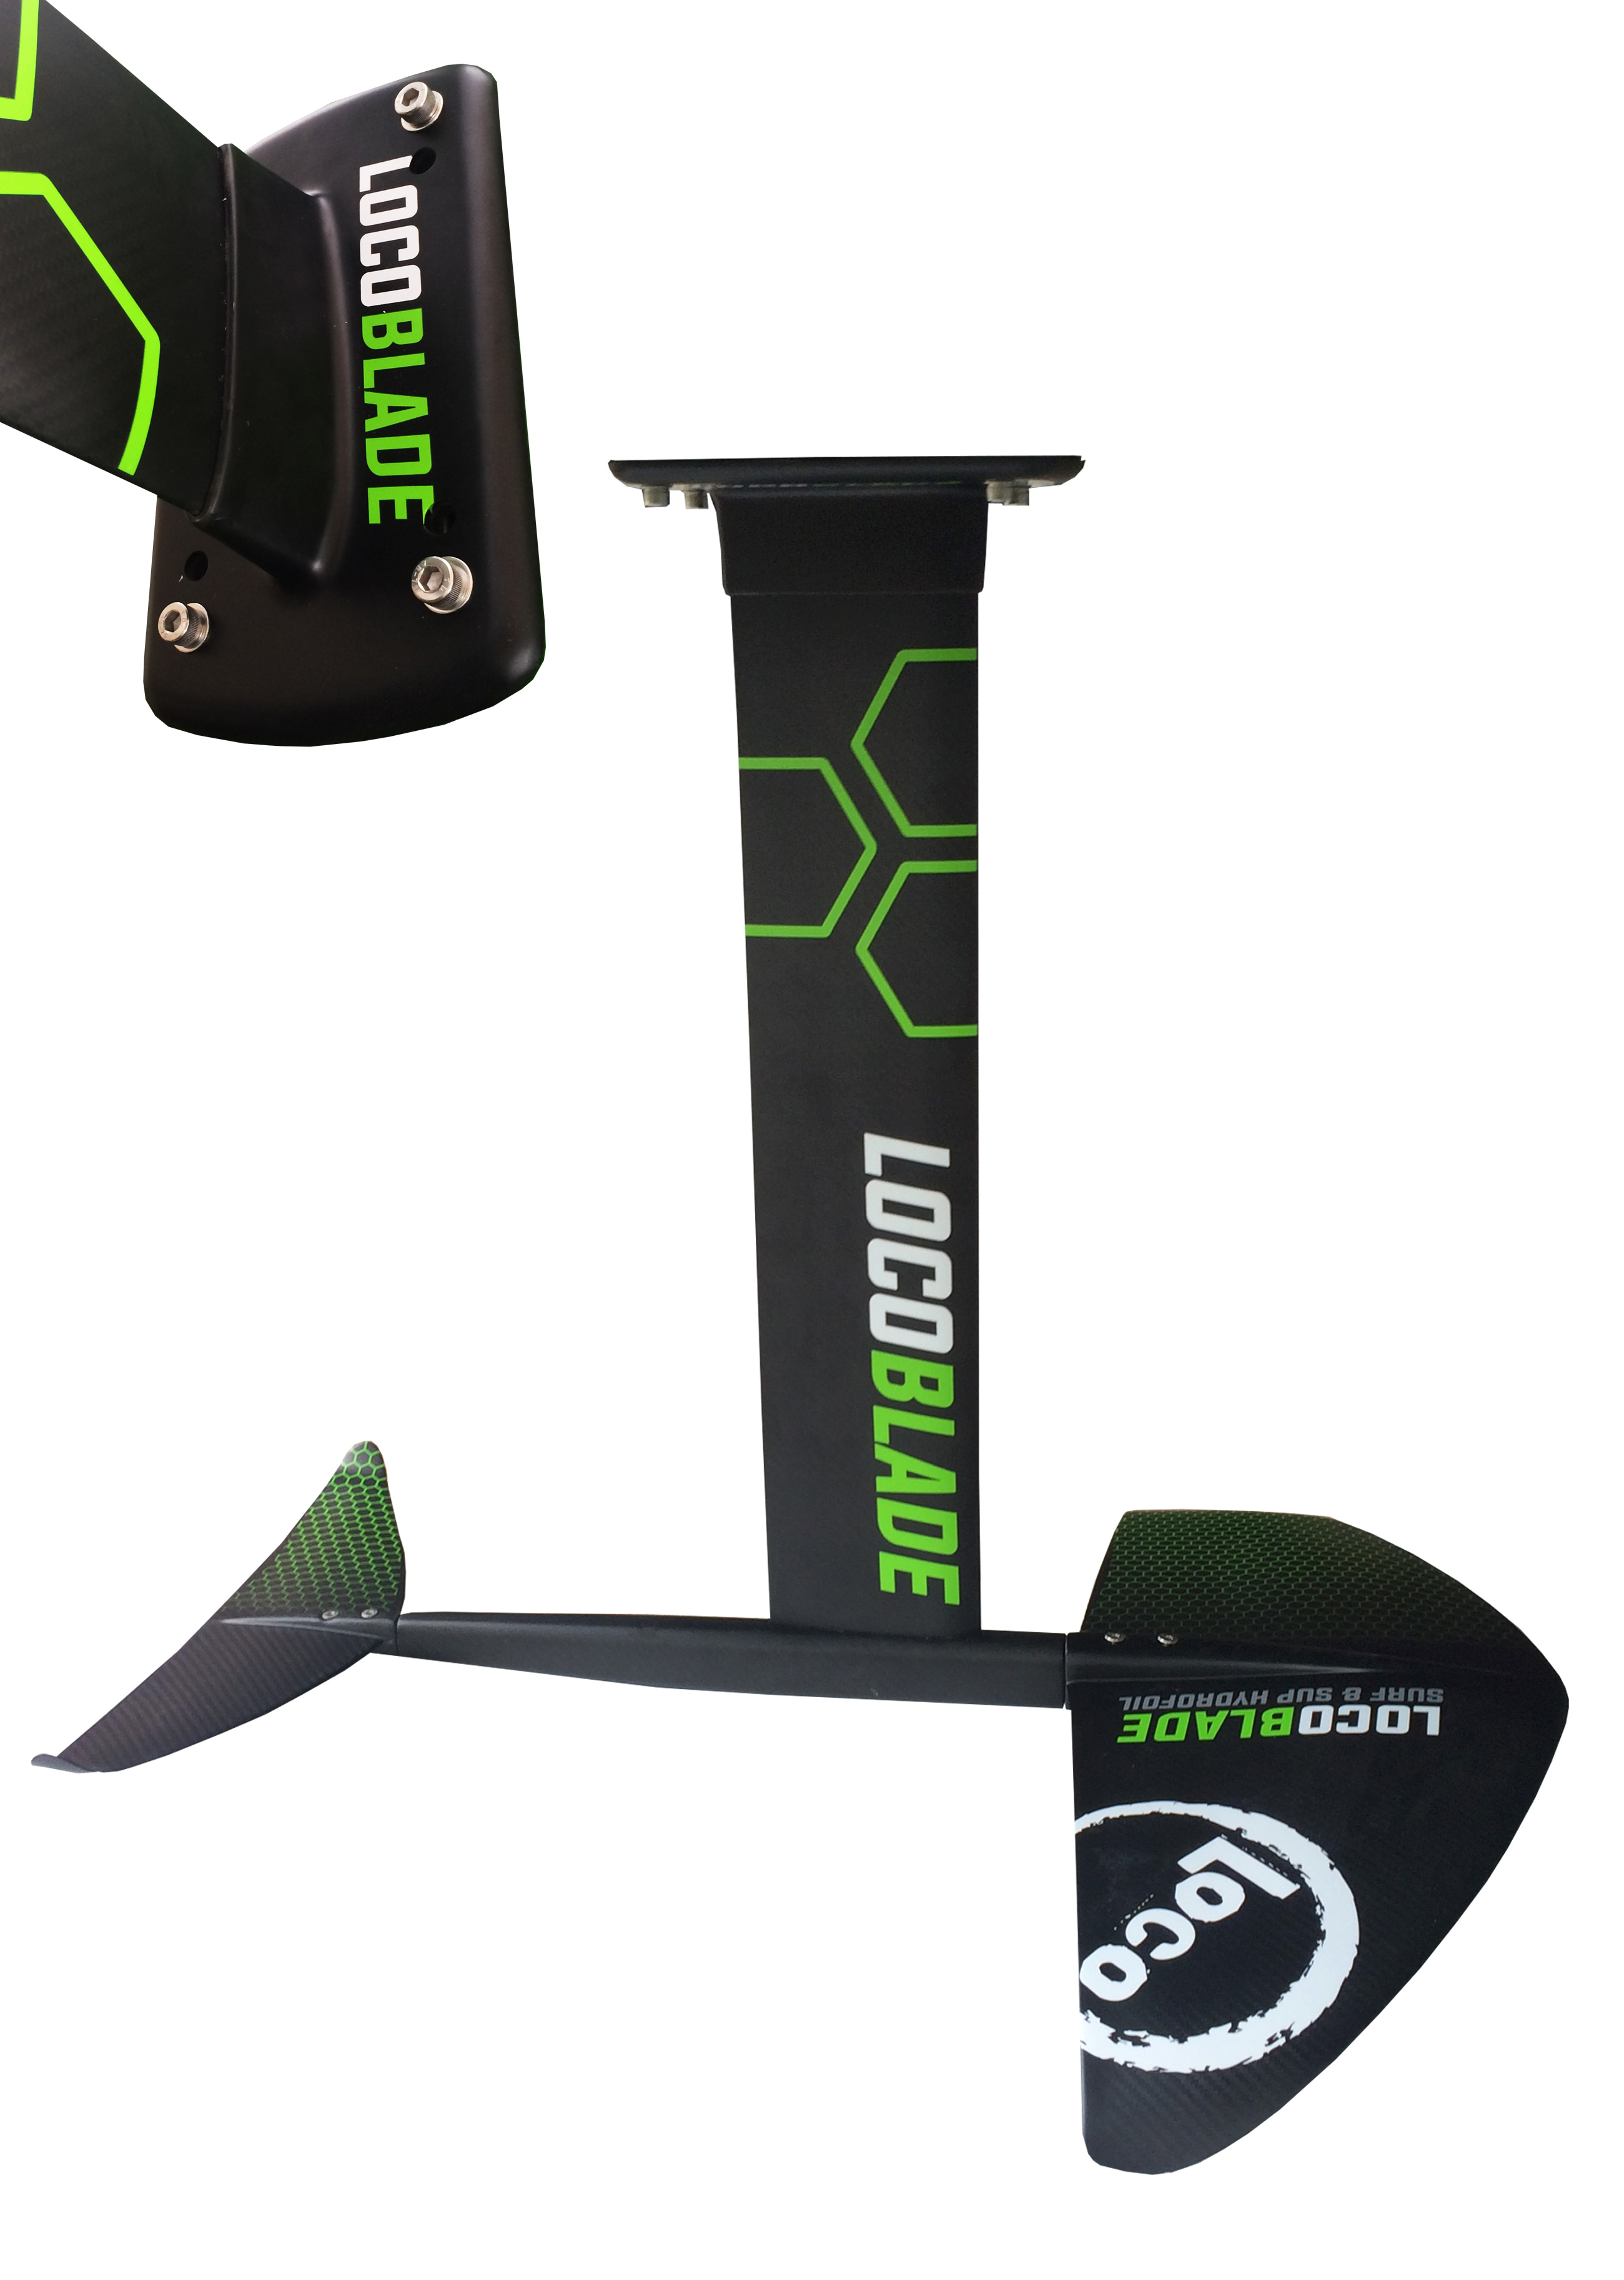 2018-Loco-Blade-Carbon-Hydro-Foil-For-SUPs-&-Surfboards